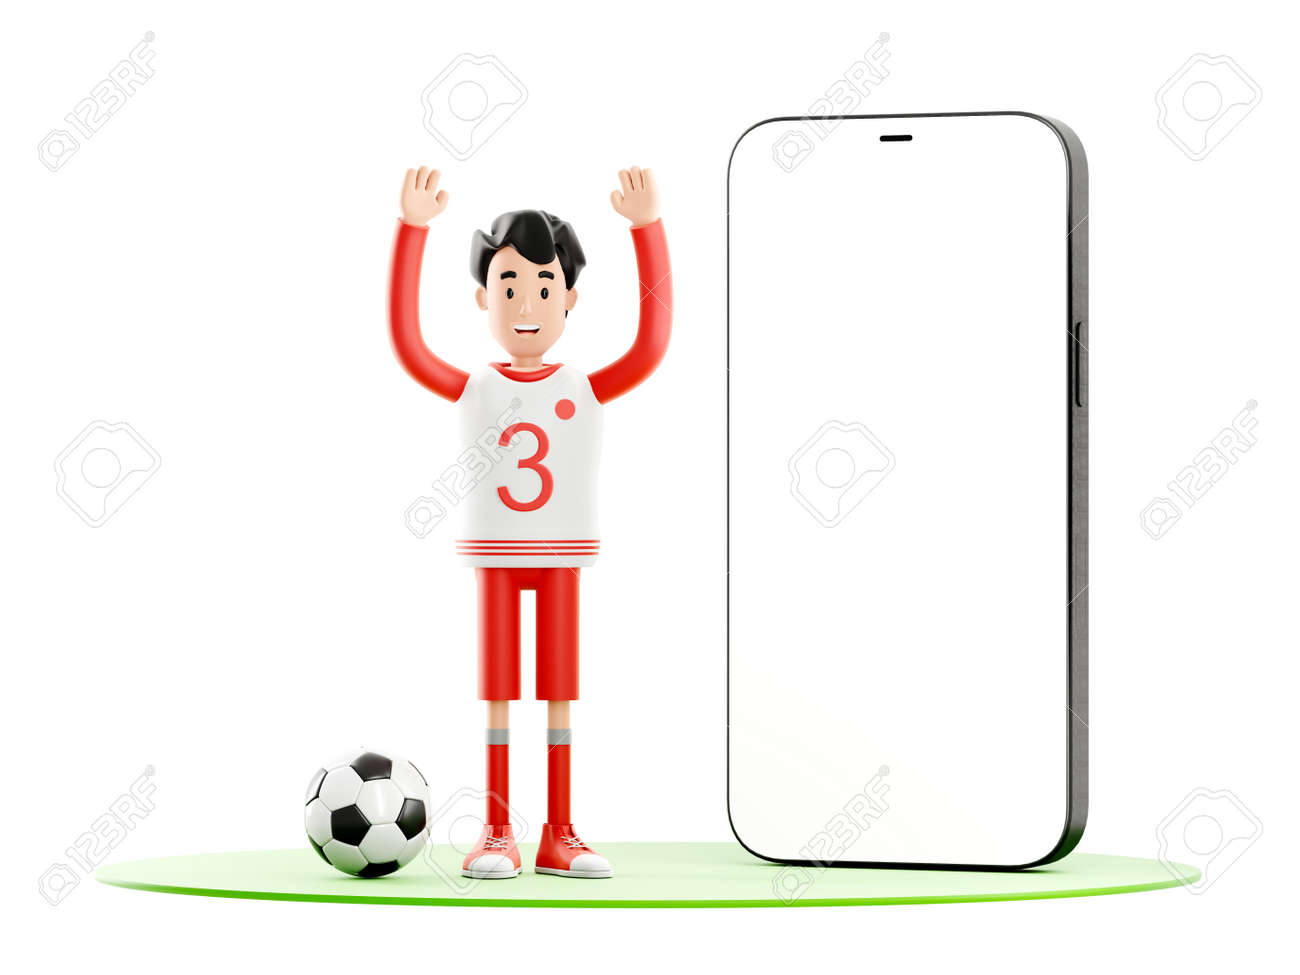 Cartoon character football or soccer player with a mobile phone - 171588130